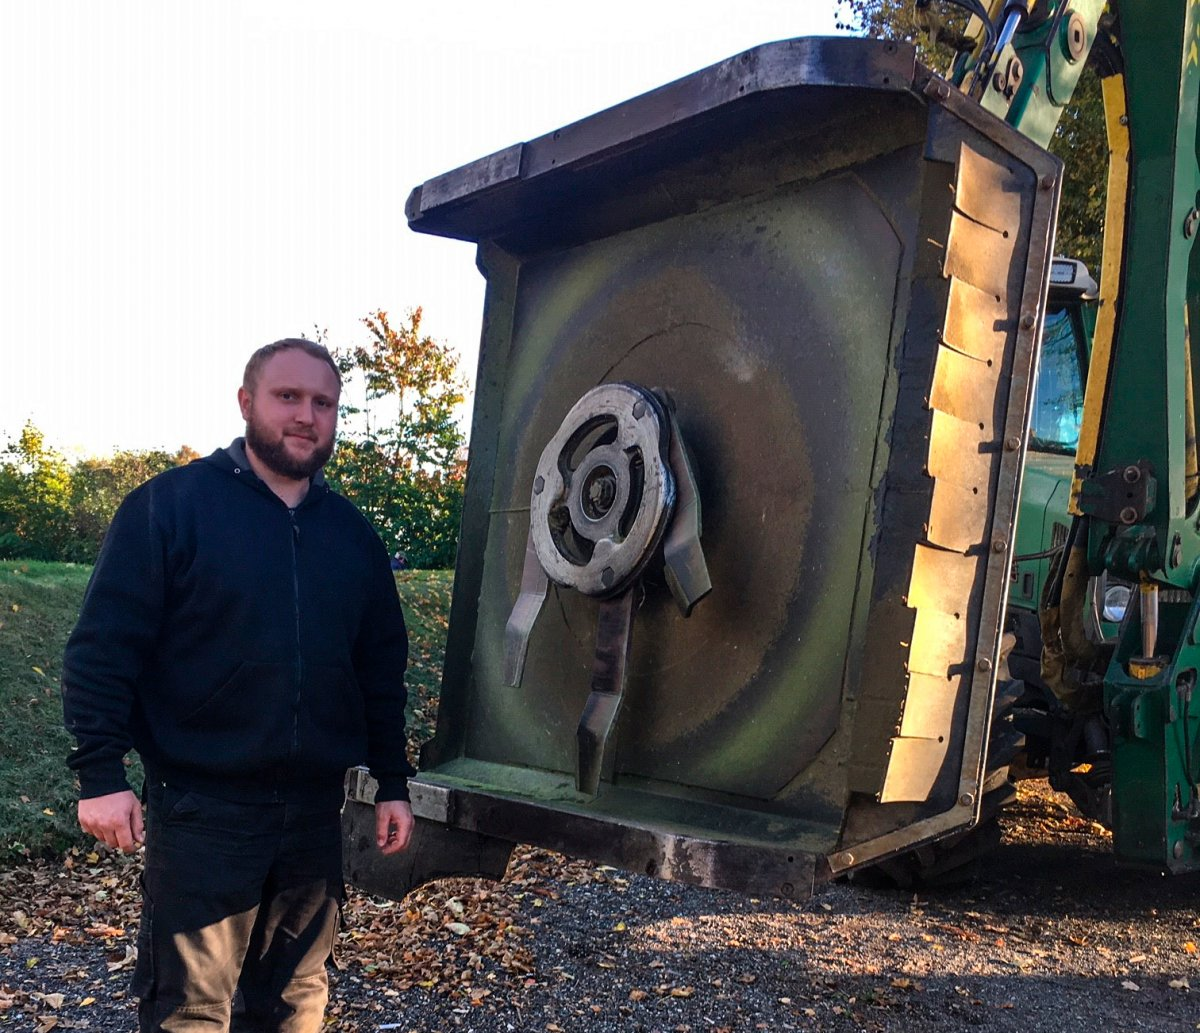 Michael Boldt Hansen standing next to his Rotary Crusher GT 135